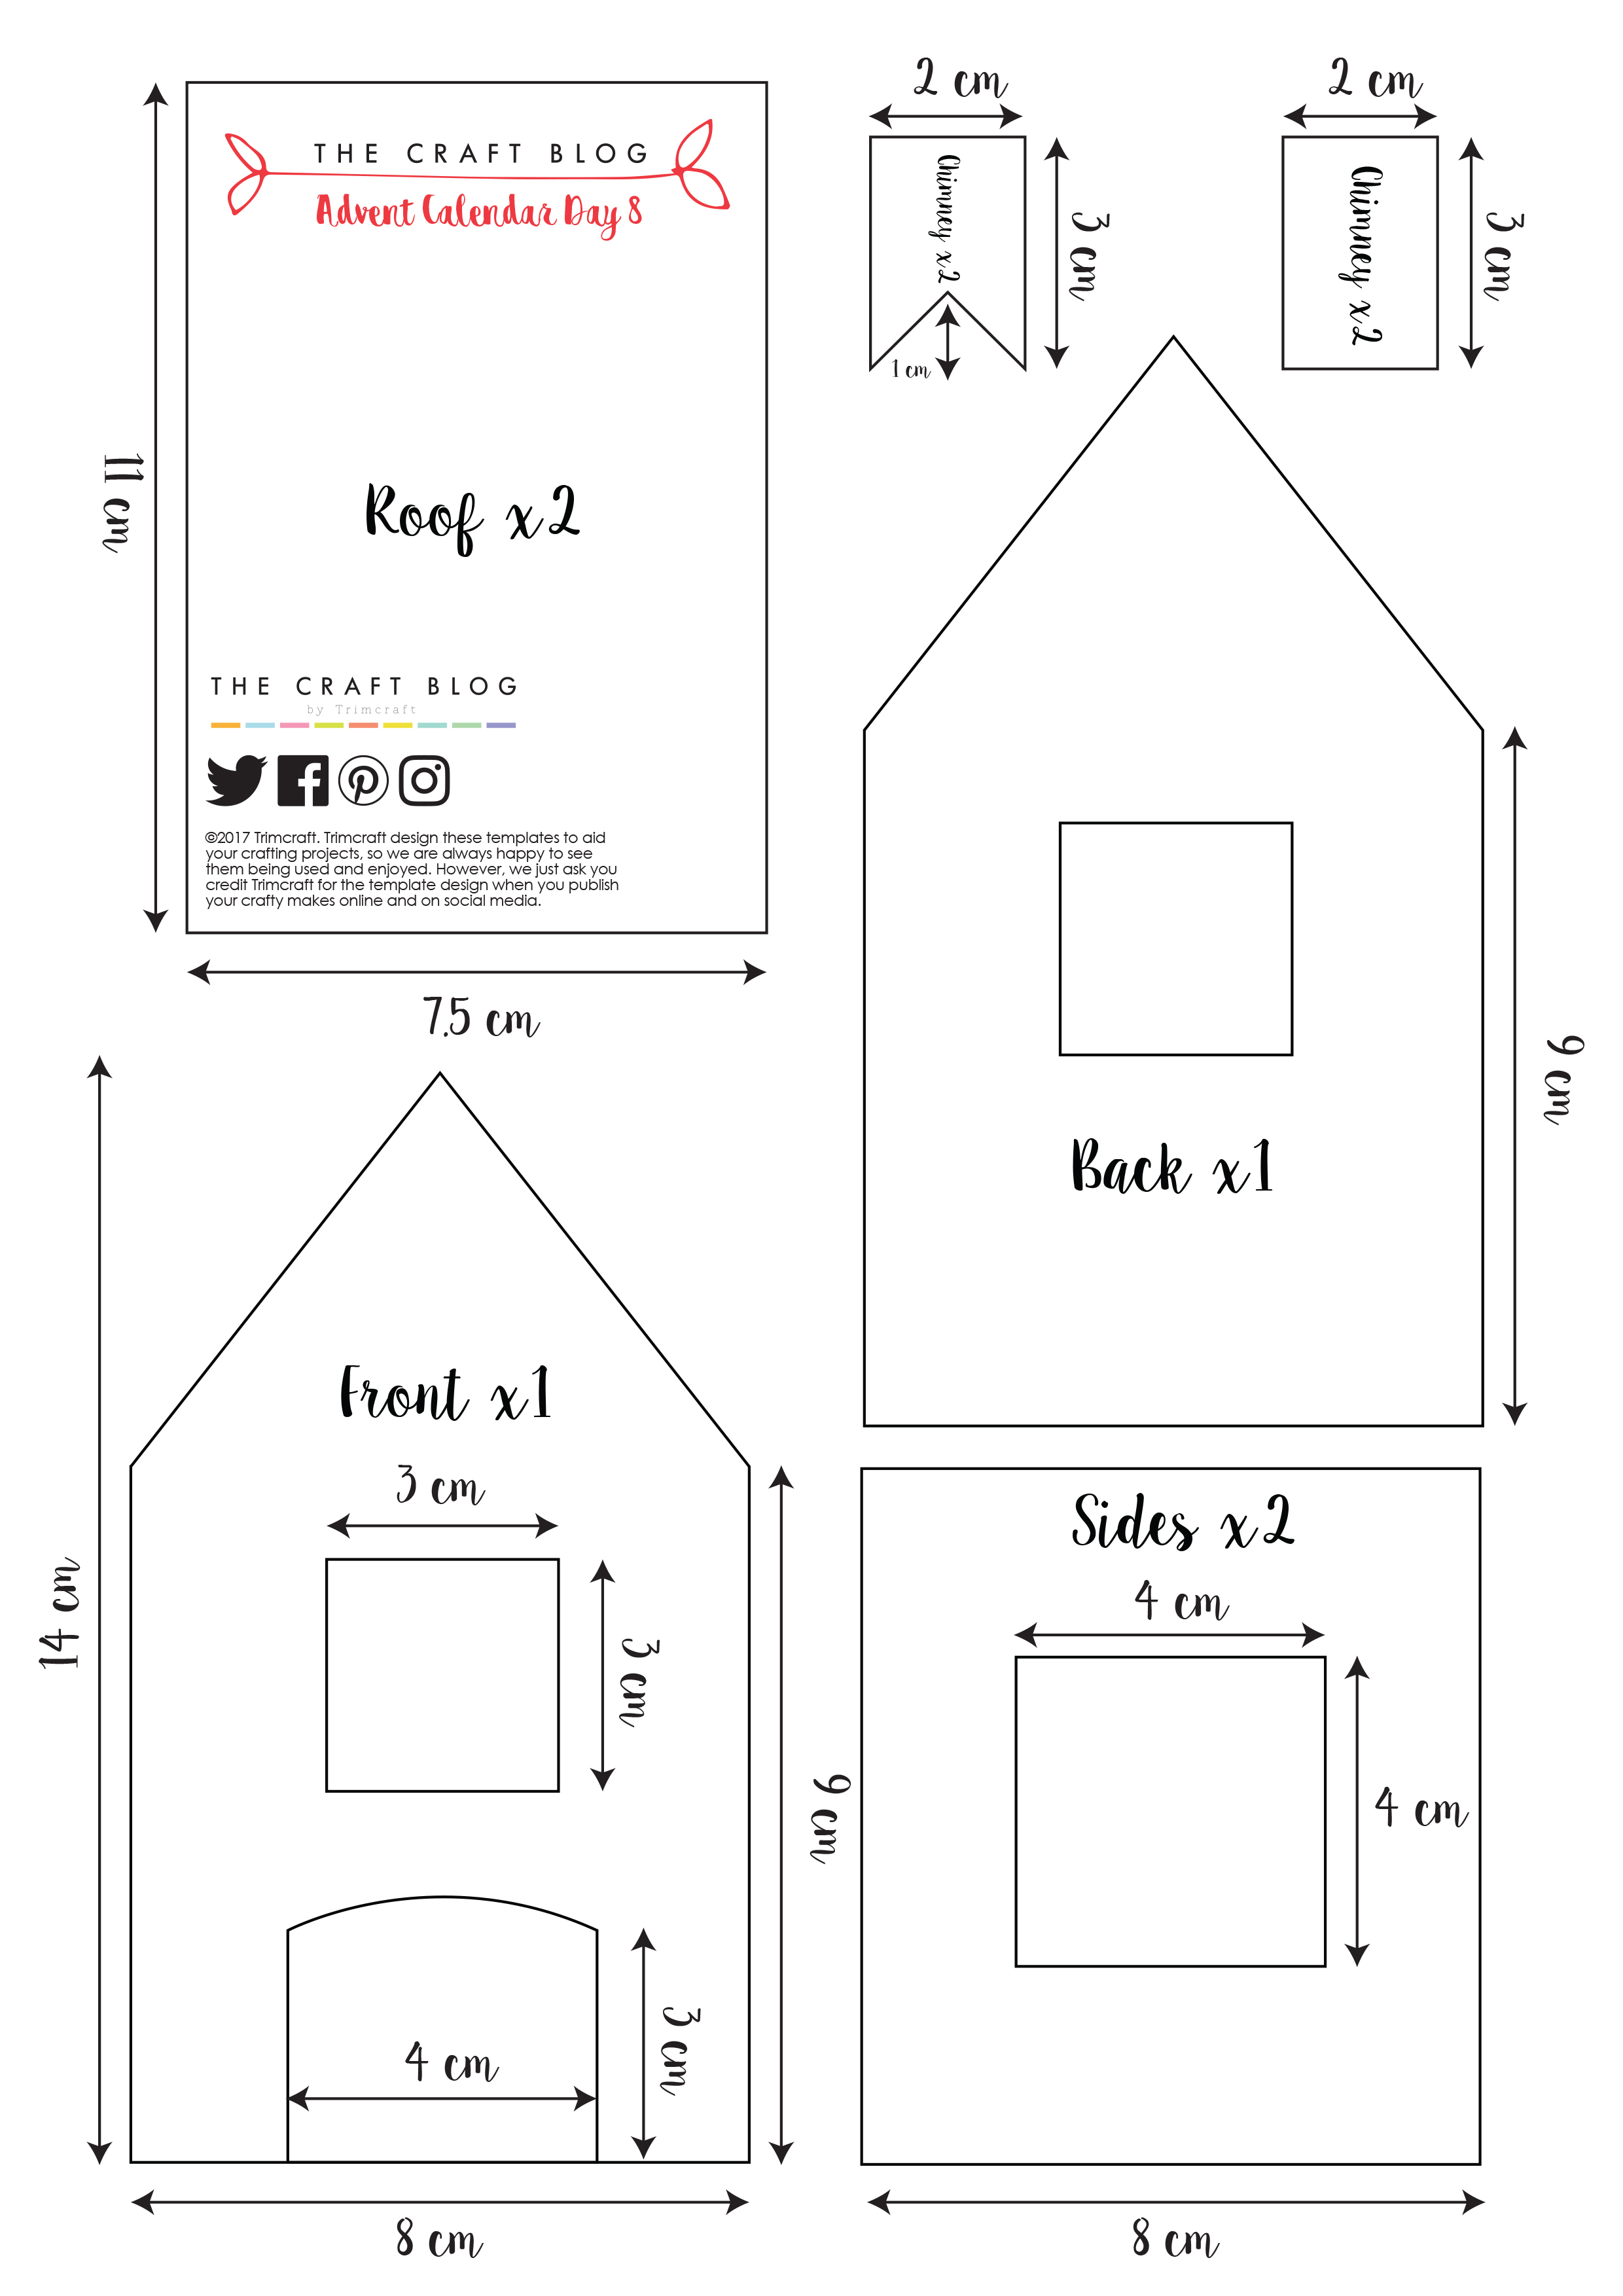 Gingerbread house printable template eliolera gingerbread house printable template eliolera pronofoot35fo Image collections